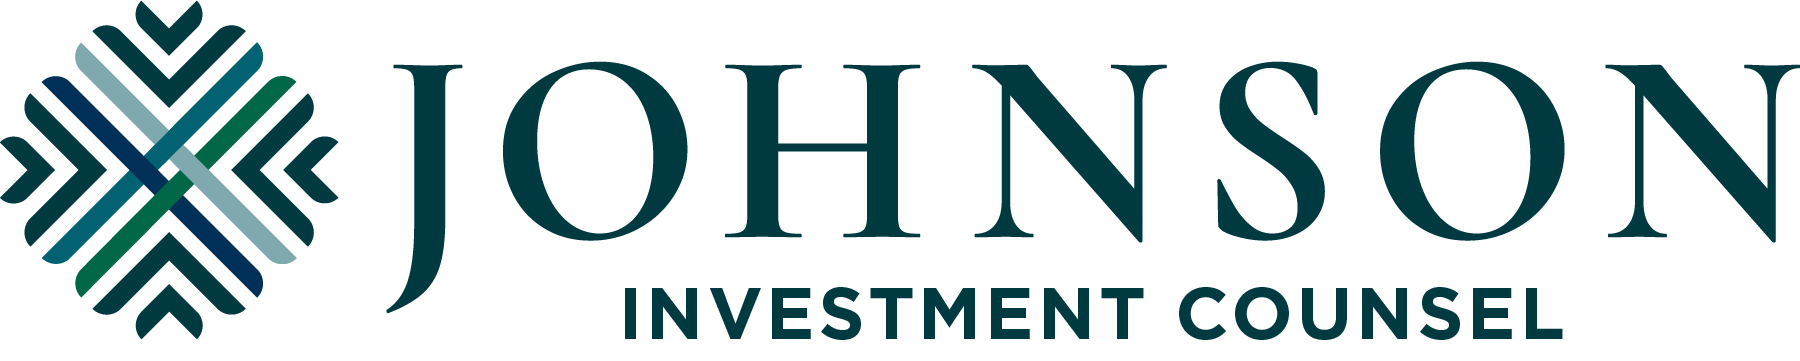 ohnson Investment Counsel